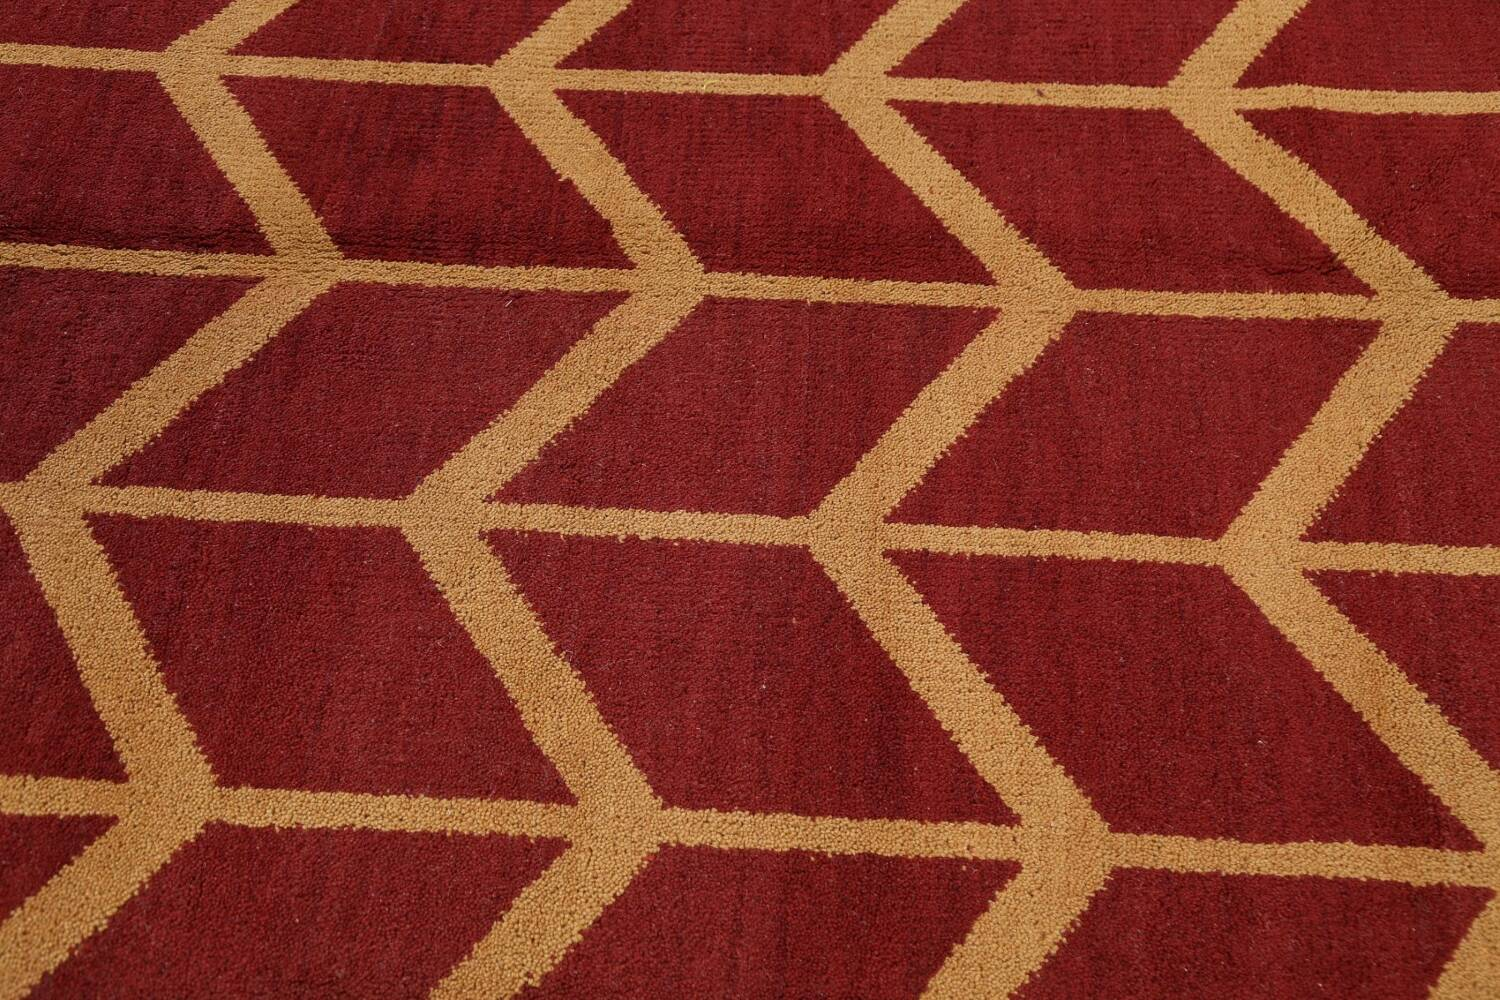 All-Over Moroccan Wool Area Rug 8x10 image 8